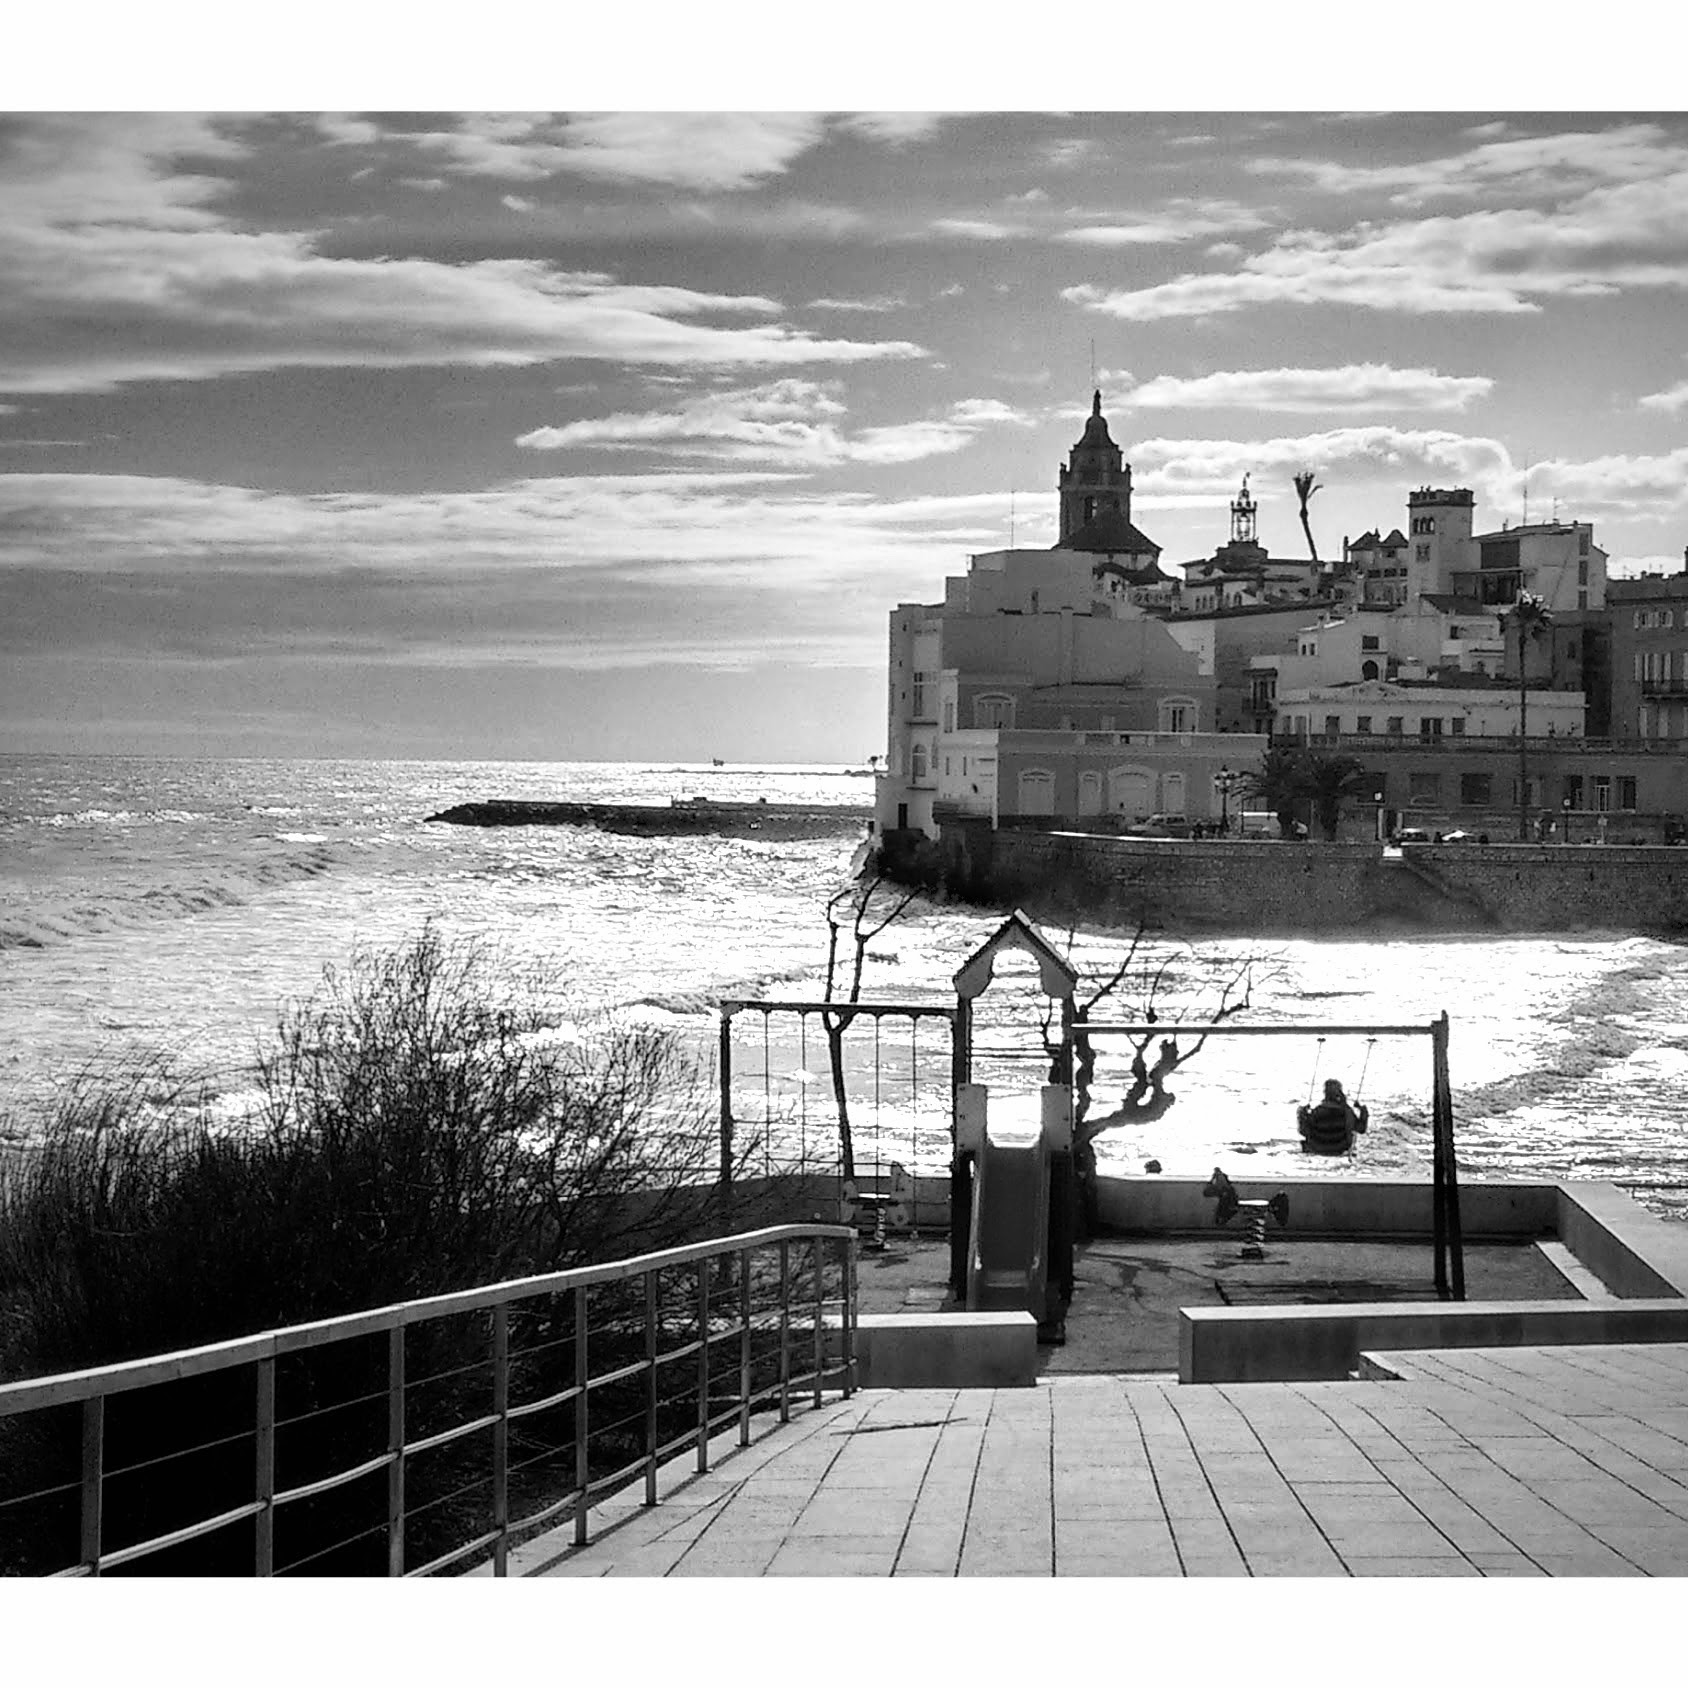 Sitges in the Spring